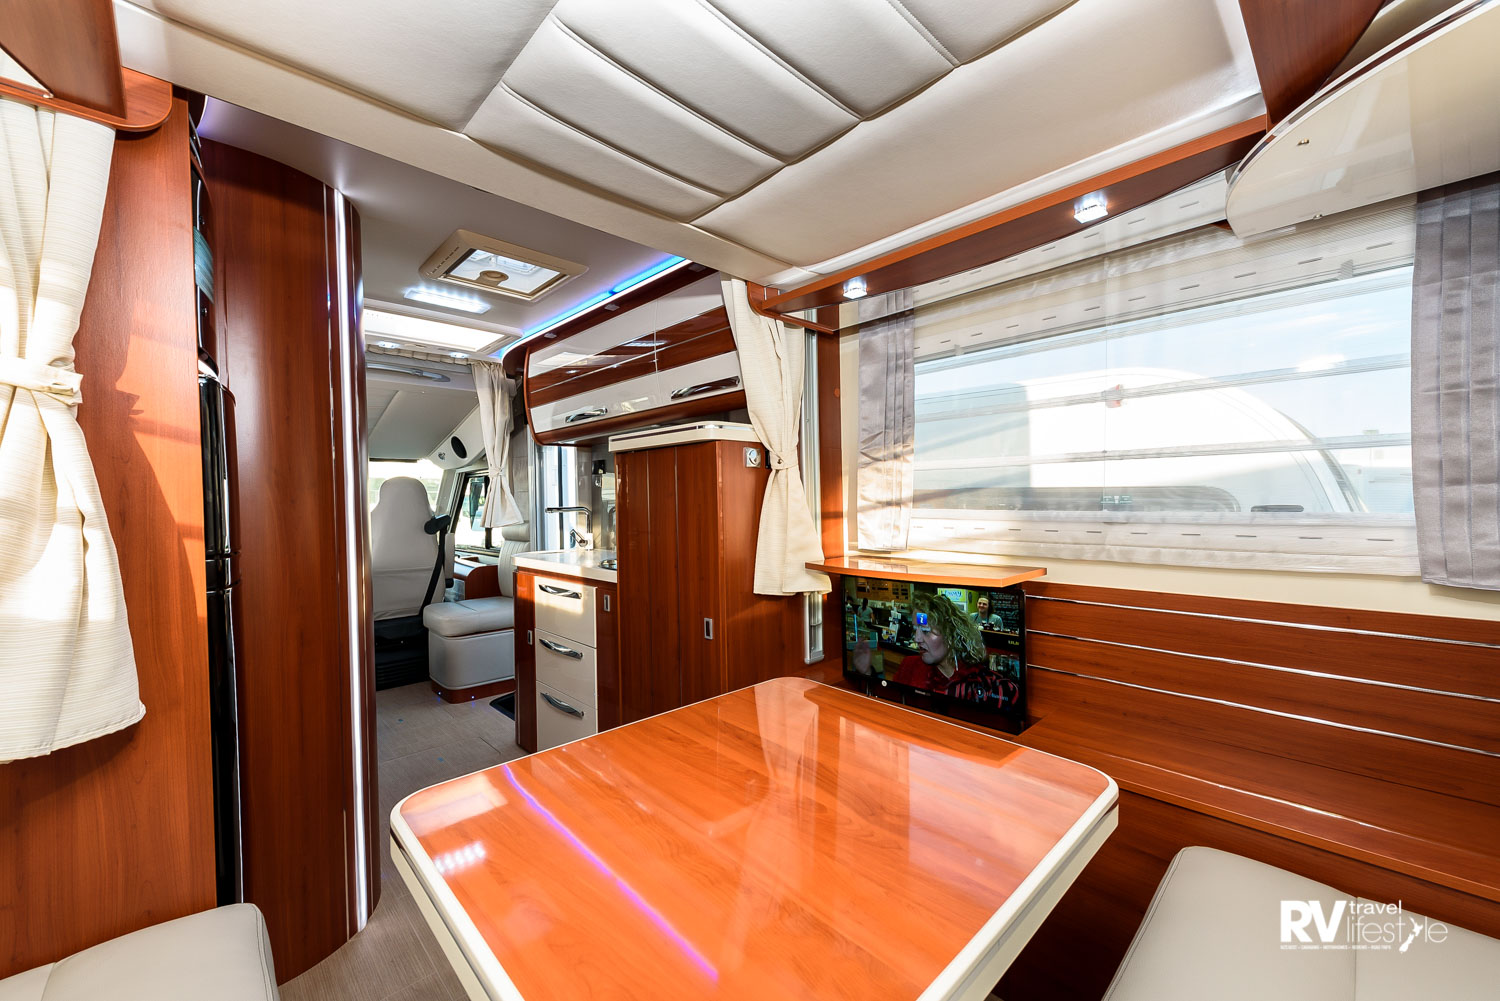 You can see why they call these the K-Yacht series, so beautiful in the styling. Note the RV screen on the right under the window – this glides away to hide out of view. The kitchen is to the left of the entry door